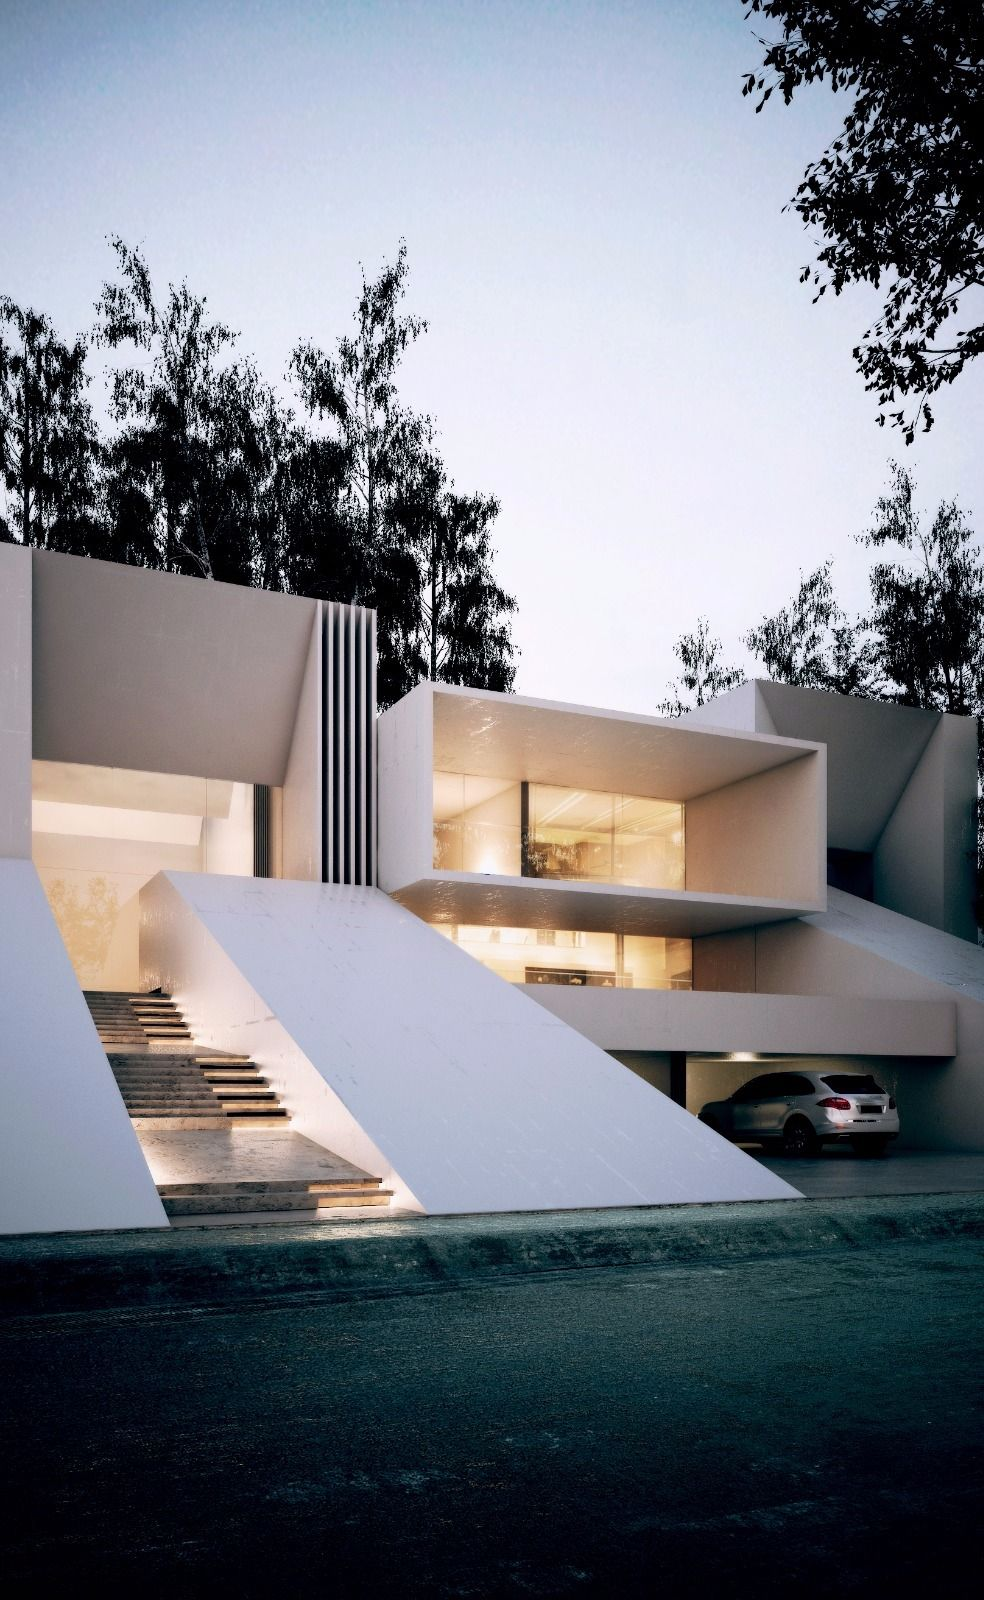 Modern Luxury Villas Designed By Gal Marom Architects: Luxury Luxe Villa Lifestyle Facade Creato Ultramodern